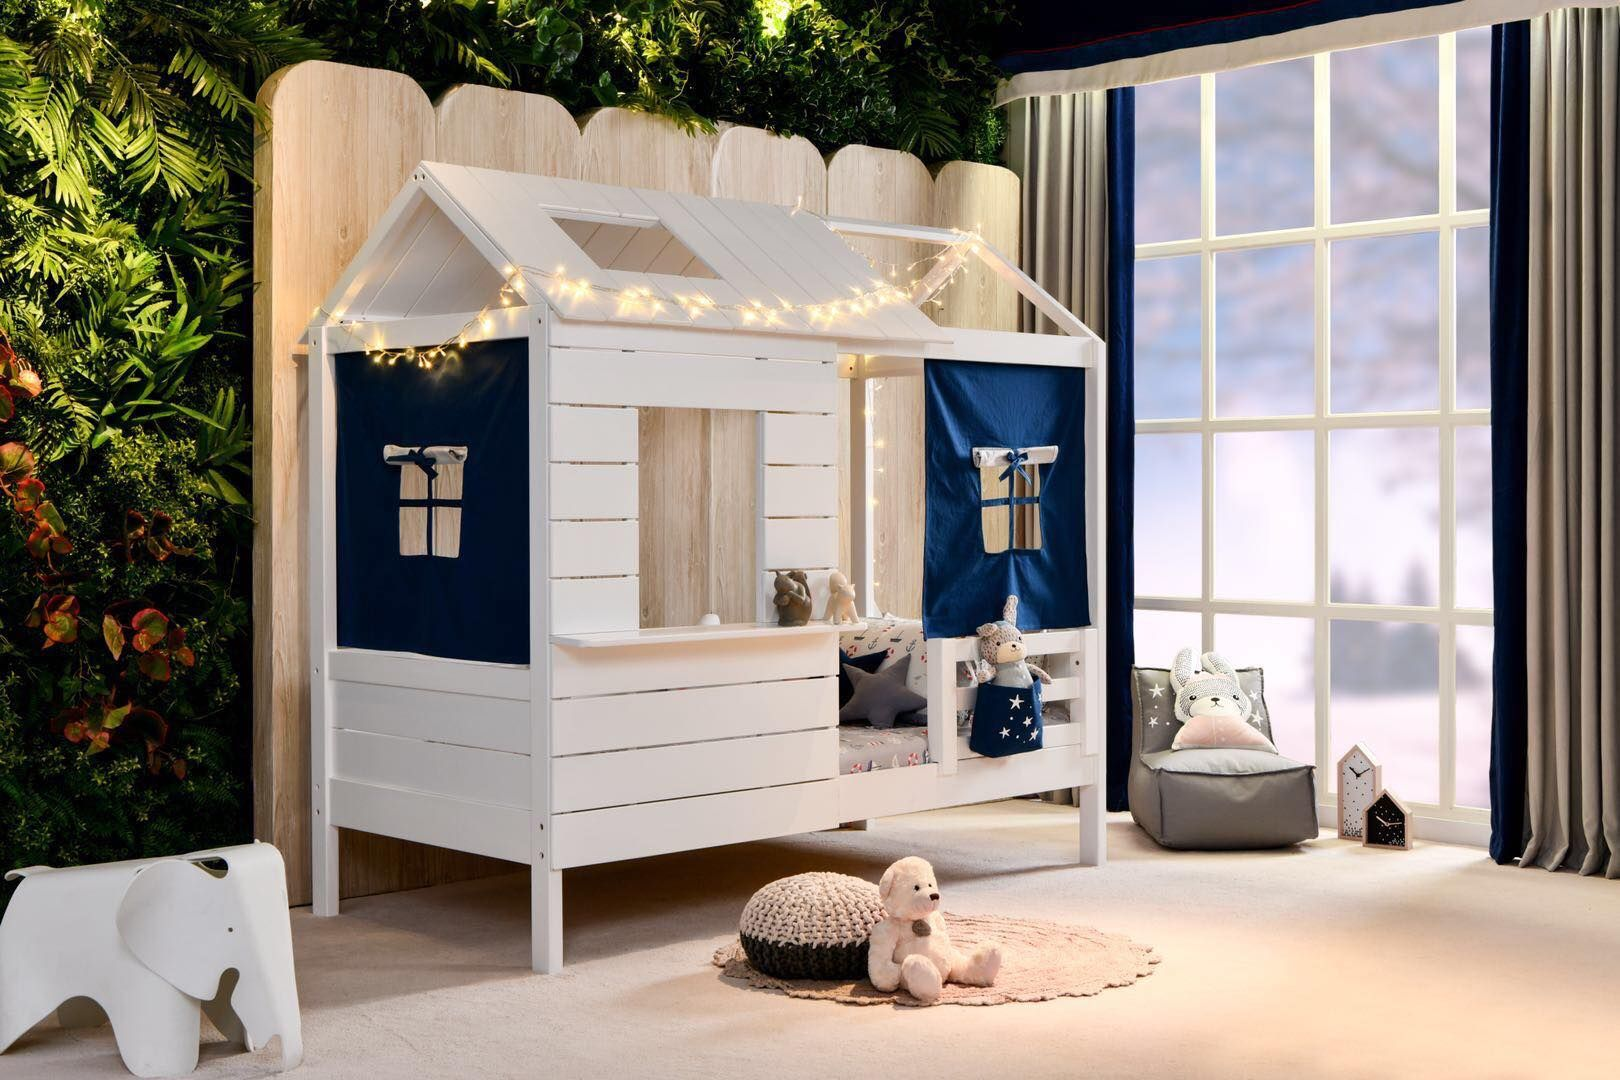 Kids Timber Canopy Beds Hopscotch Kids Brisbane Based Kids Rule Our World Afterpay Available Big Range Cool Beds For Kids Kid Beds Kids Cubby Houses